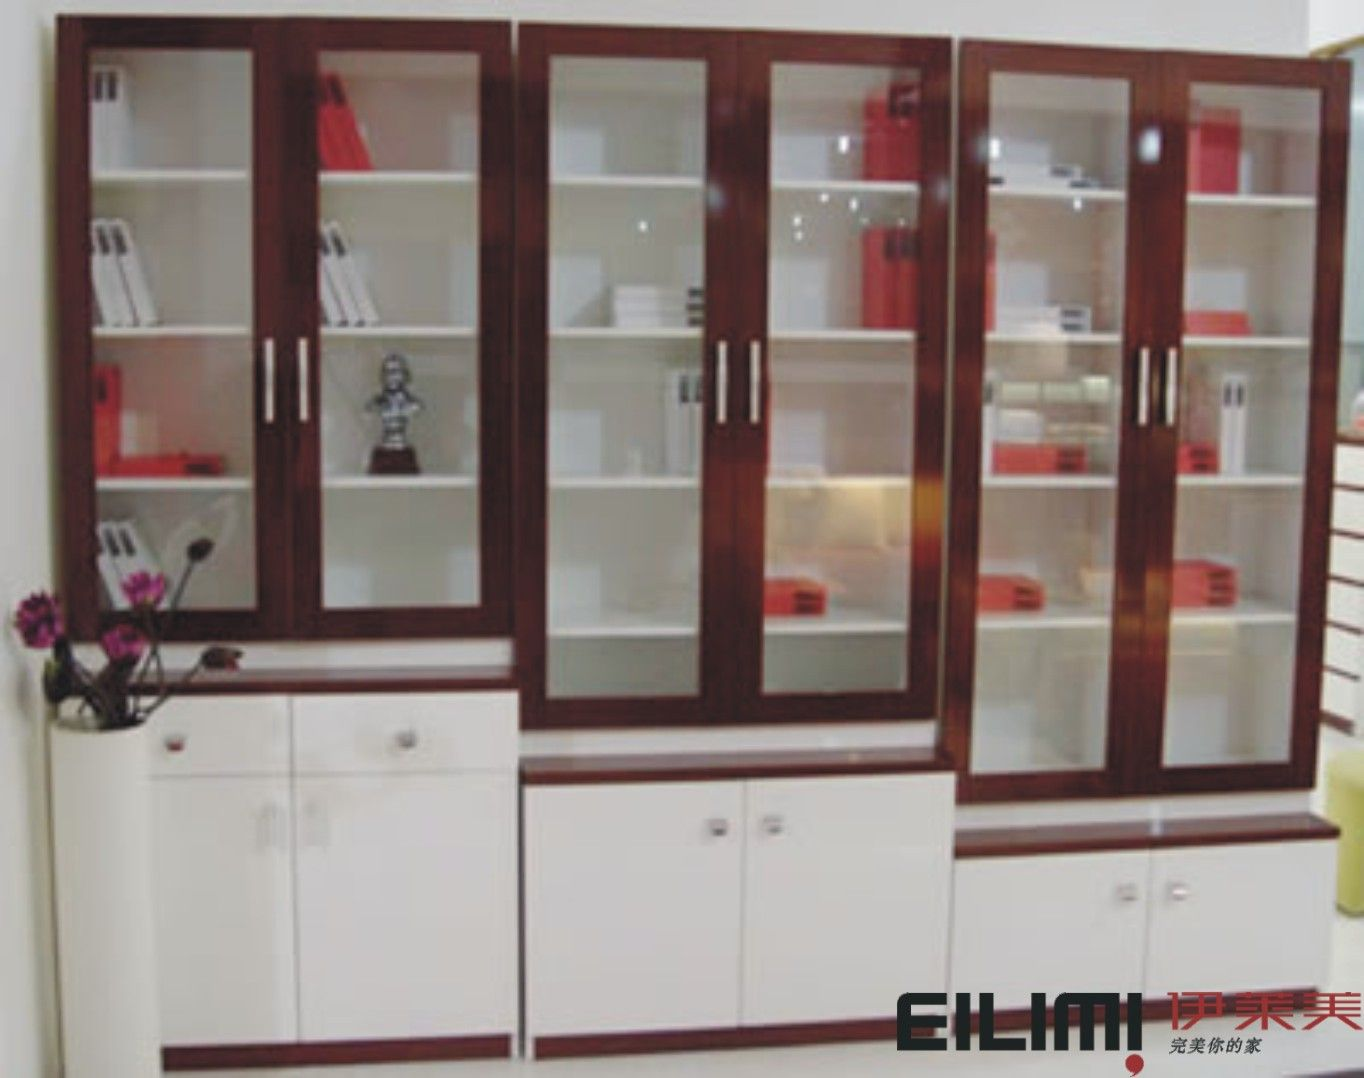 Living room cabinets gryslille living room cabinetry for Dining room cabinet designs pictures